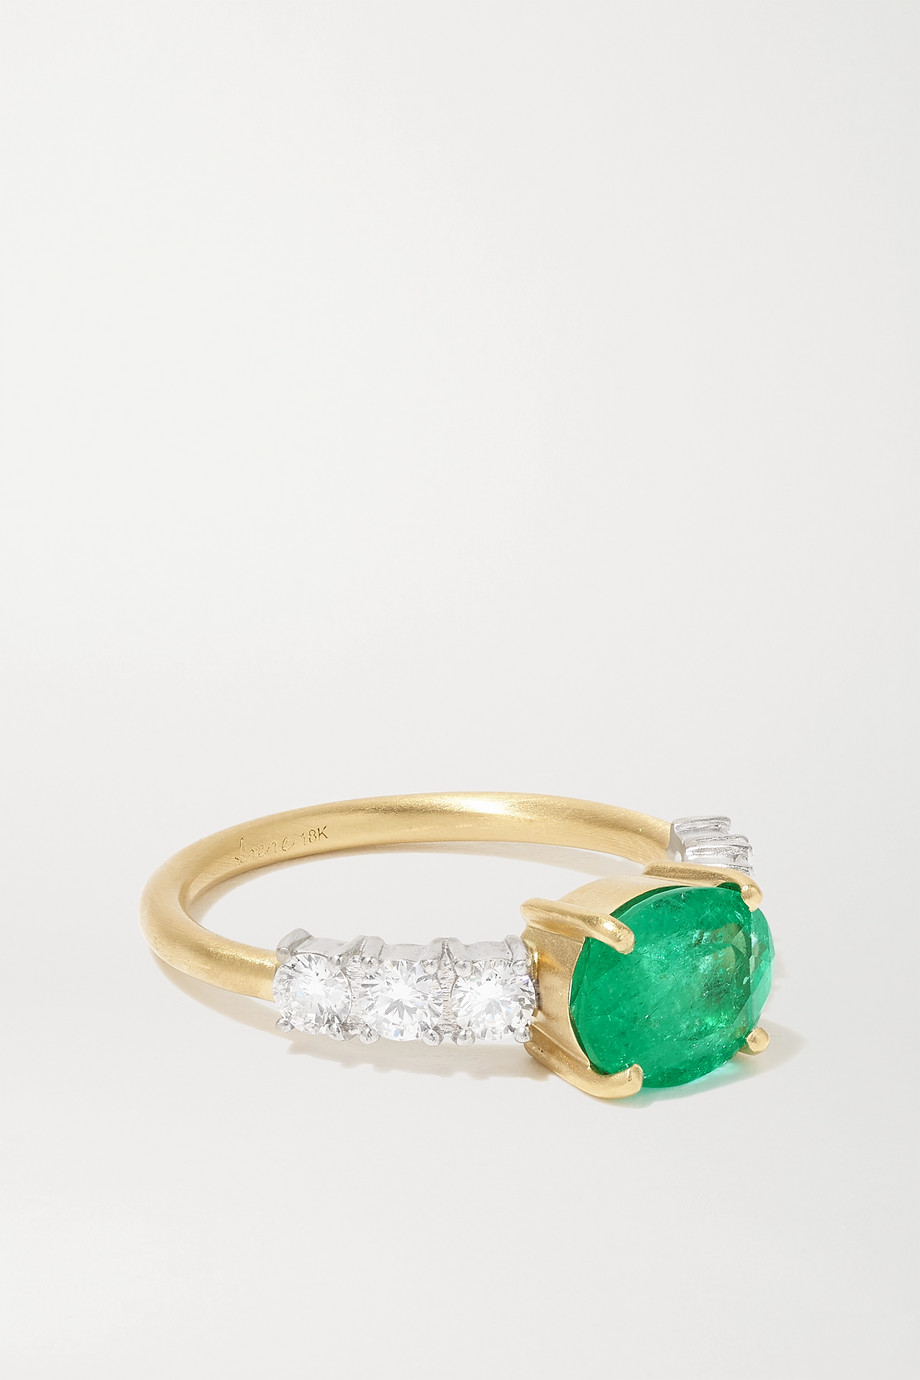 IRENE NEUWIRTH Tennis 18-karat yellow and white gold, emerald and diamond ring